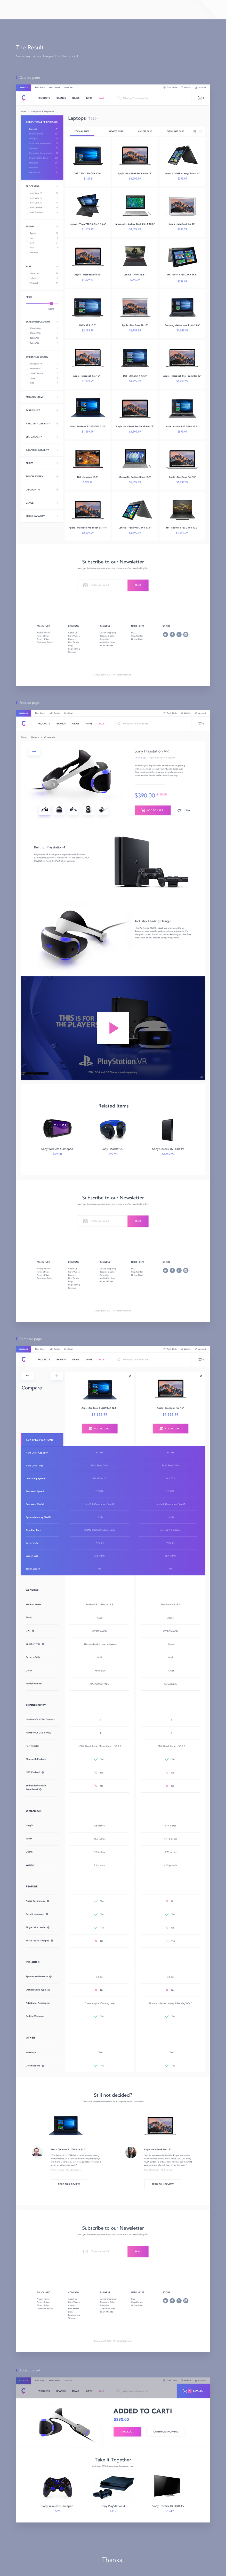 e-commerce shop interaction Interface prototype Website smooth White UI ux